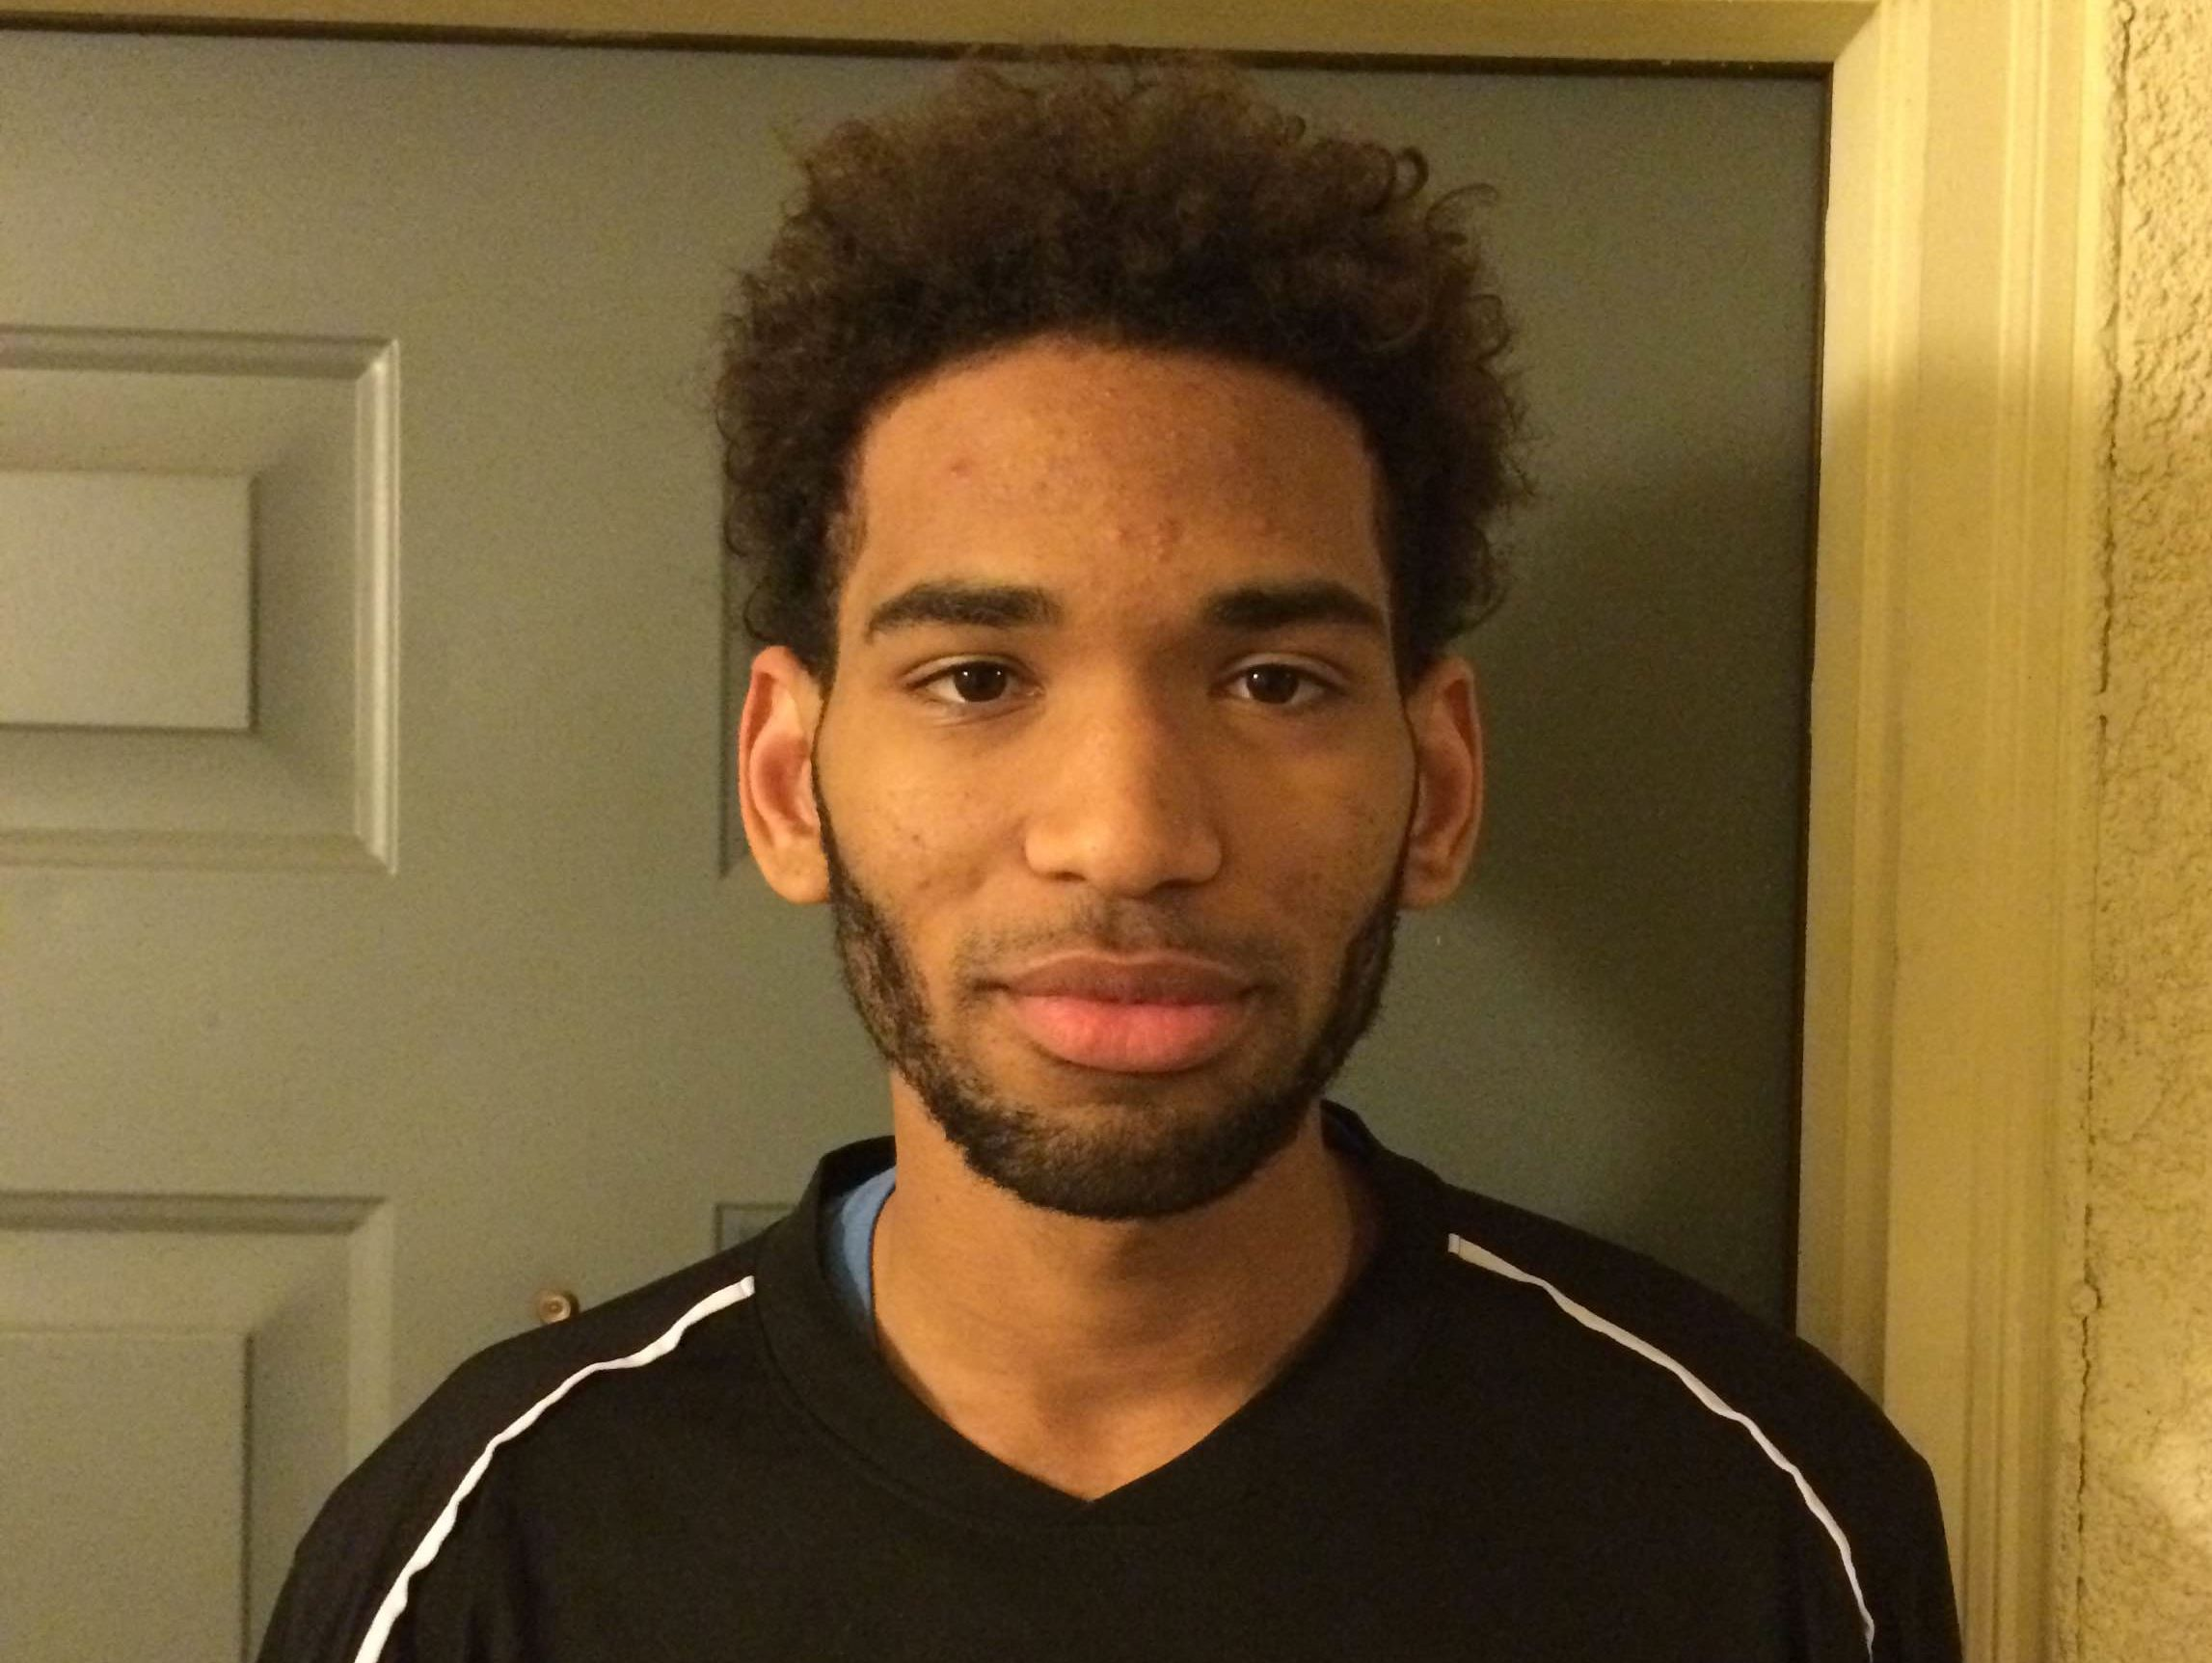 Devonte Evans, from Yuma Cibola, is azcentral sports' Male Athlete of the Week for Dec. 31-Jan. 7.